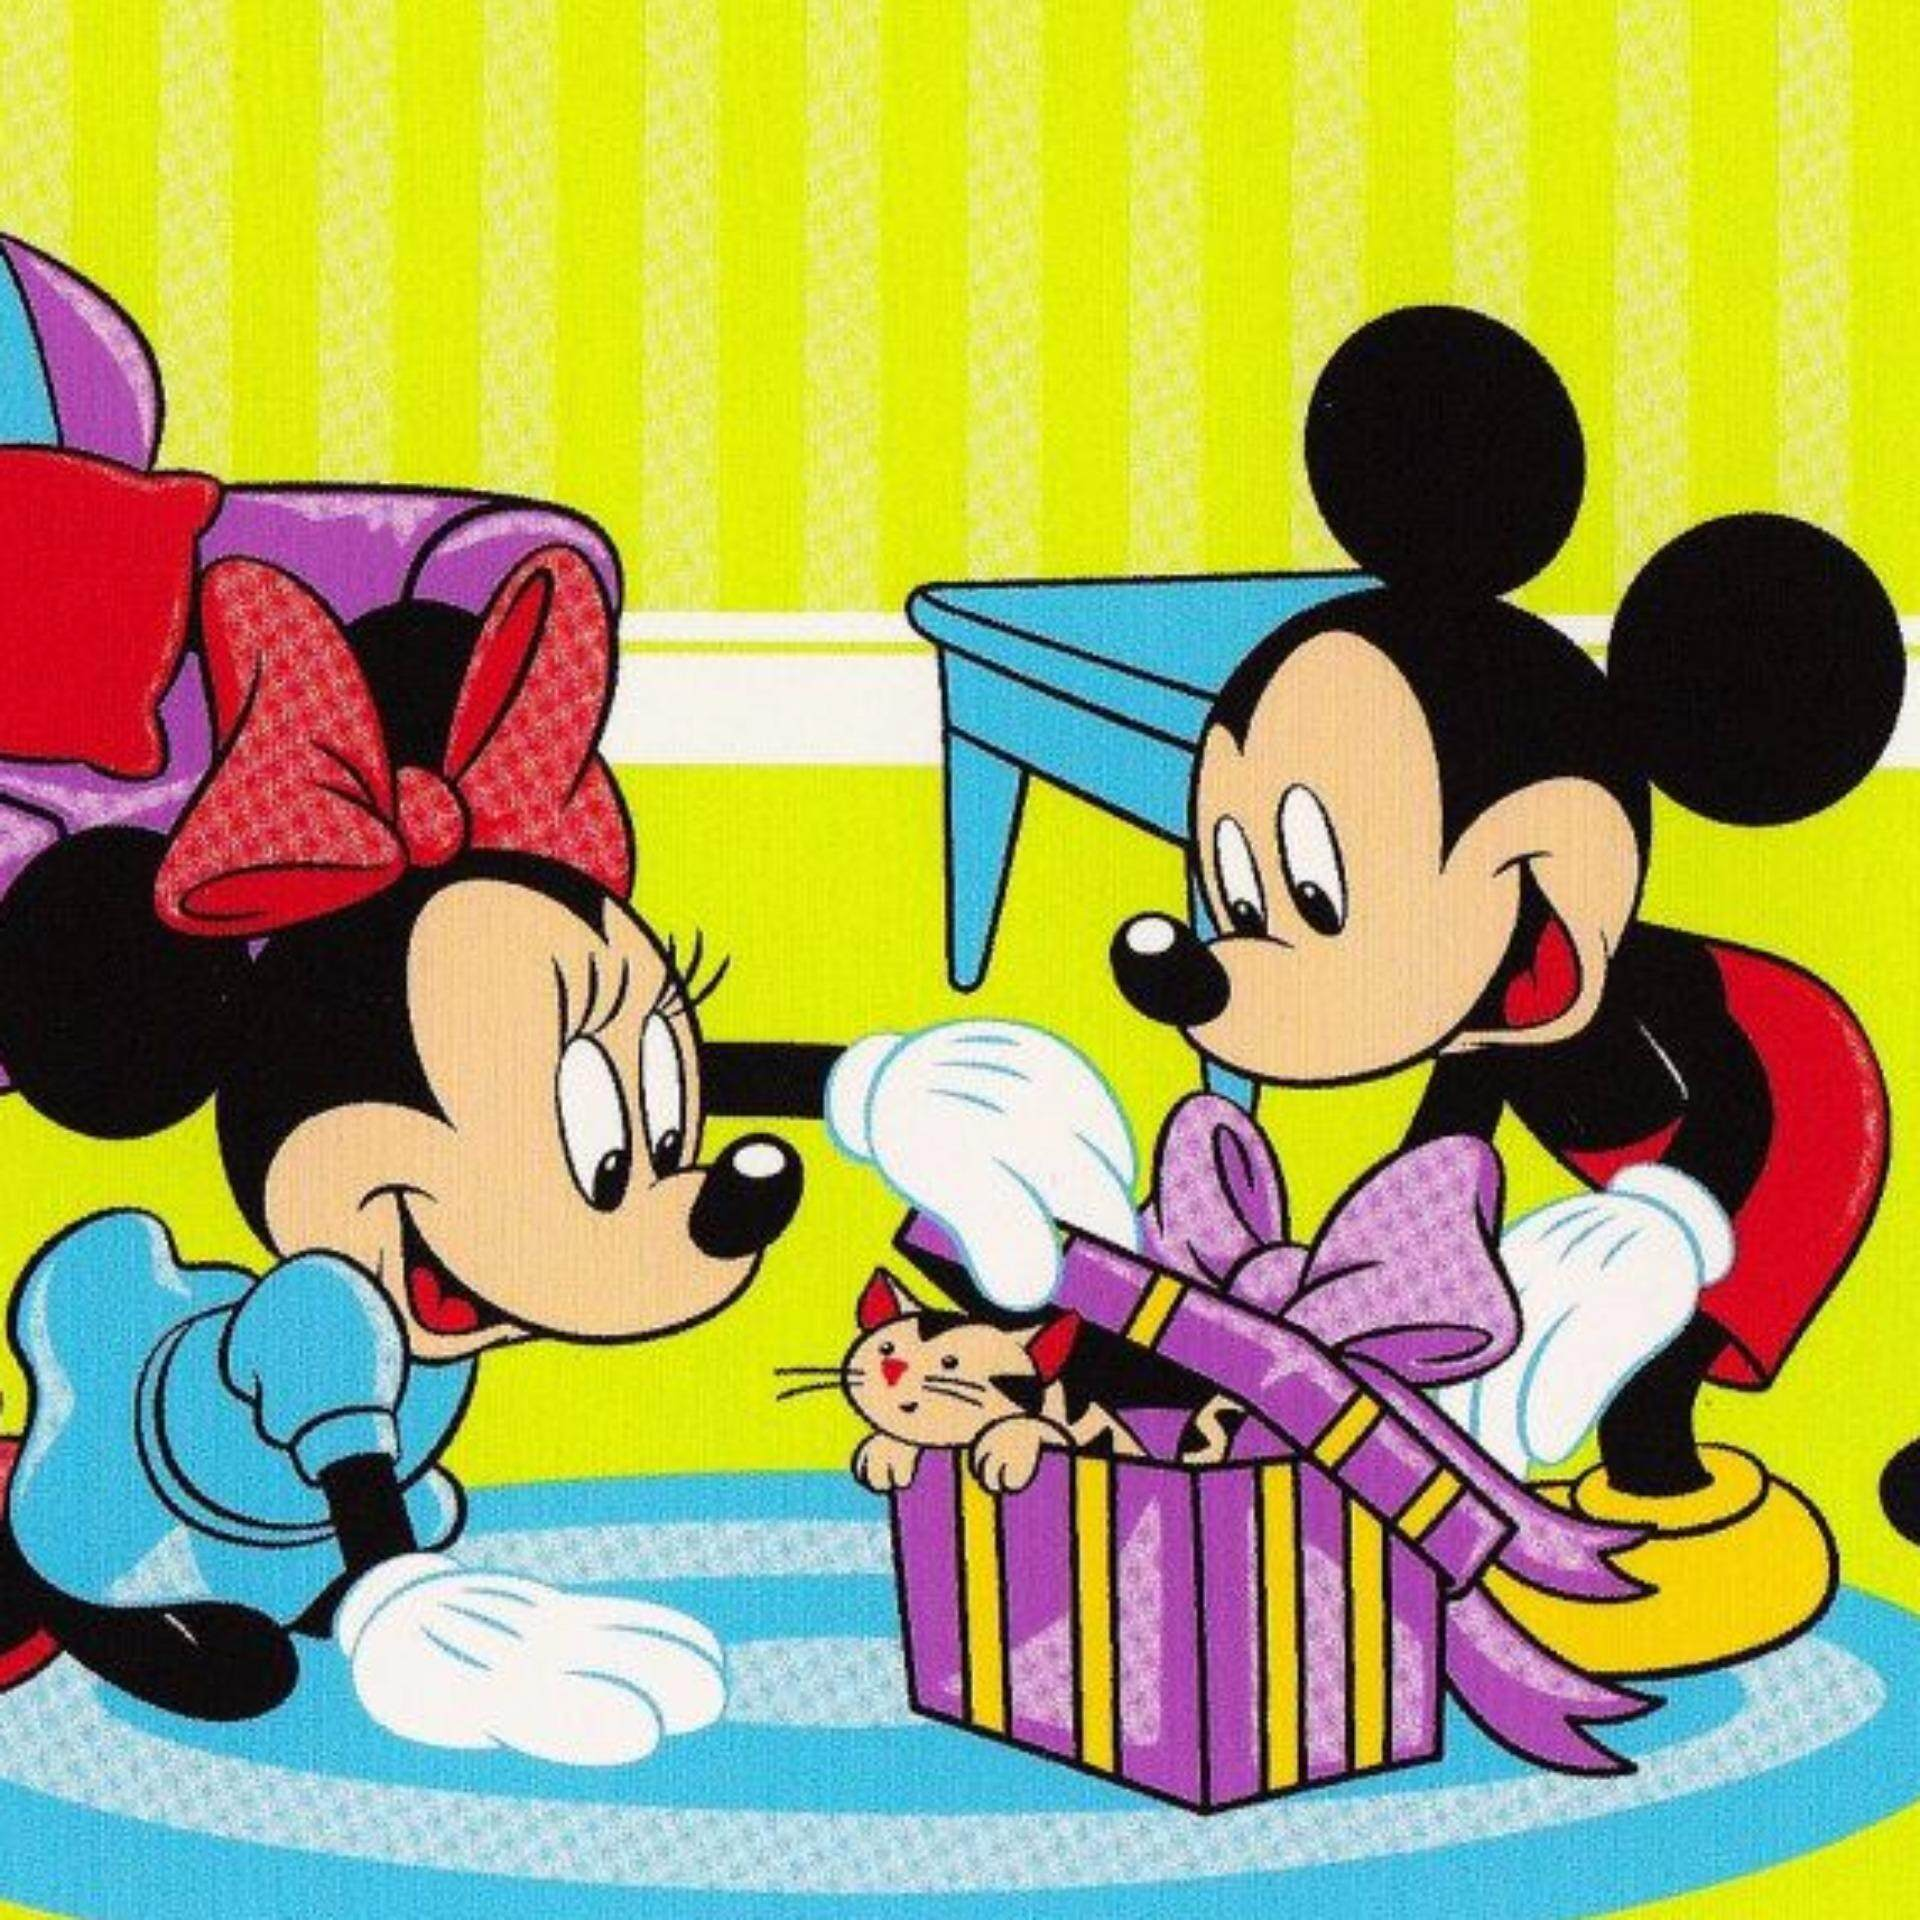 Set Single Bedsheet - MICKEY MOUSE WITH A SURPRISE GIFT